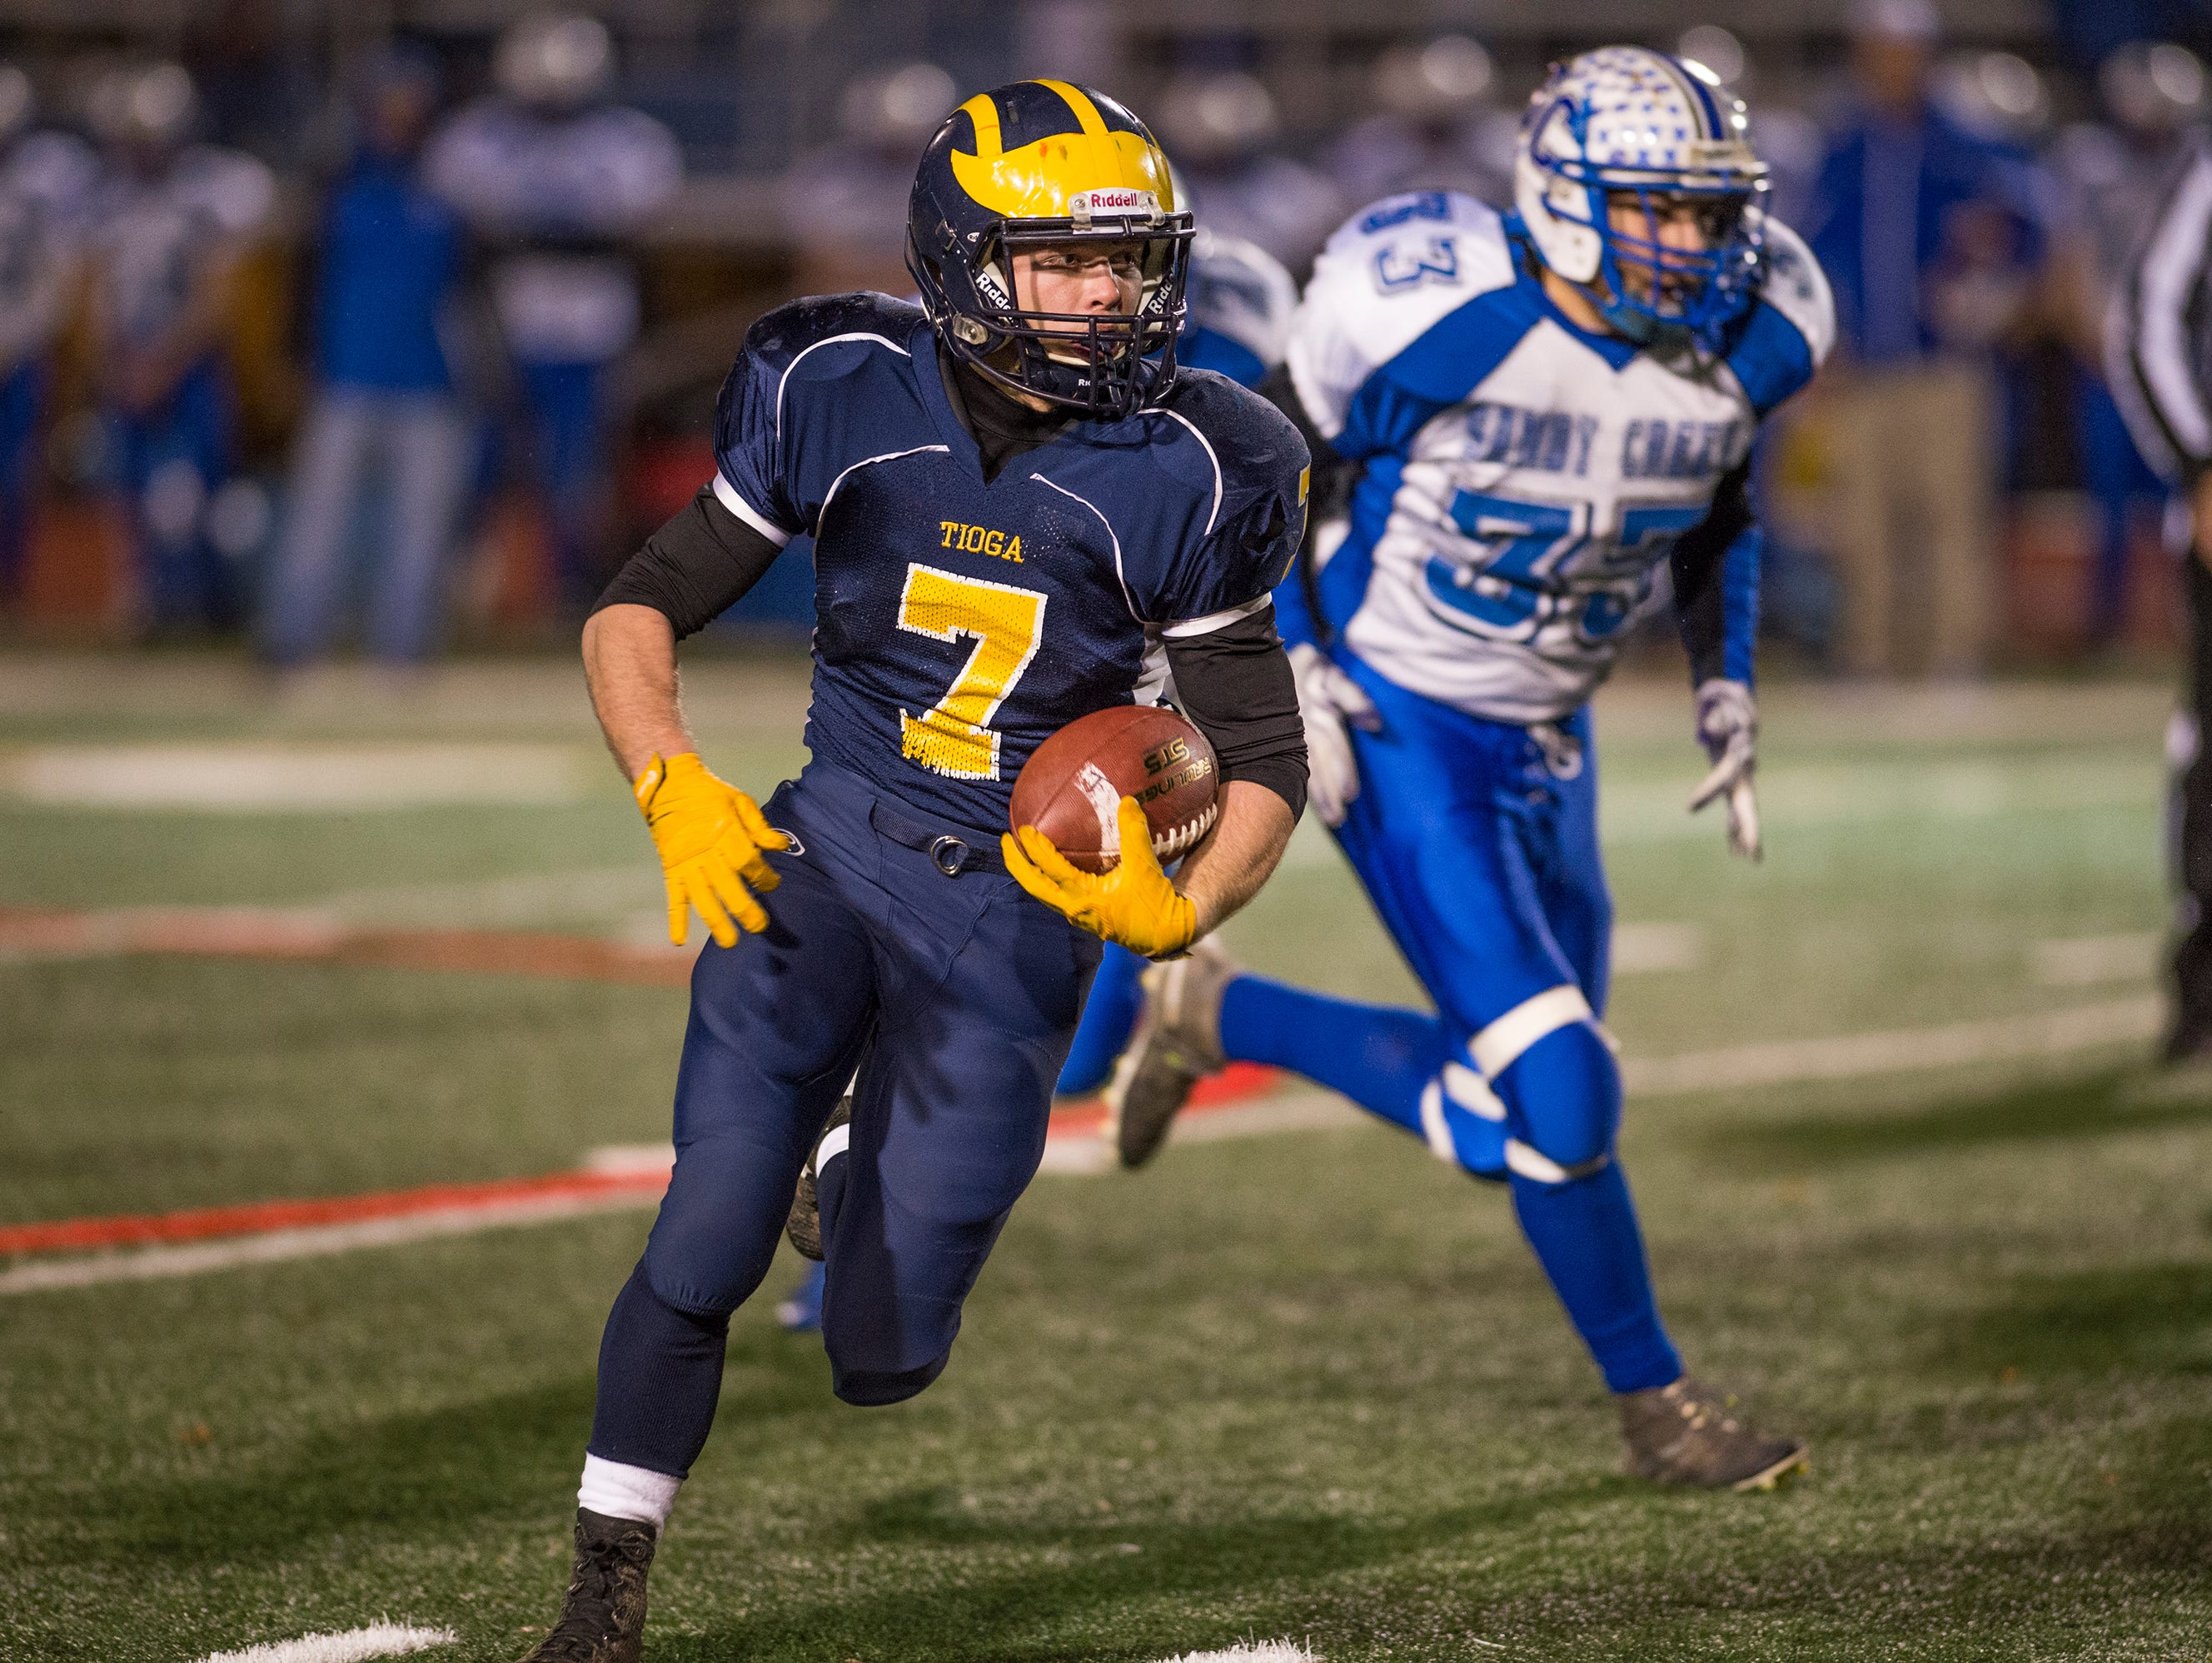 Tioga running back Jesse Manuelturns upfield during the first quarter of the Tiger's Class D state quarterfinal playoff game at Binghamton Alumni Stadium on Friday, Nov. 13, 2015.